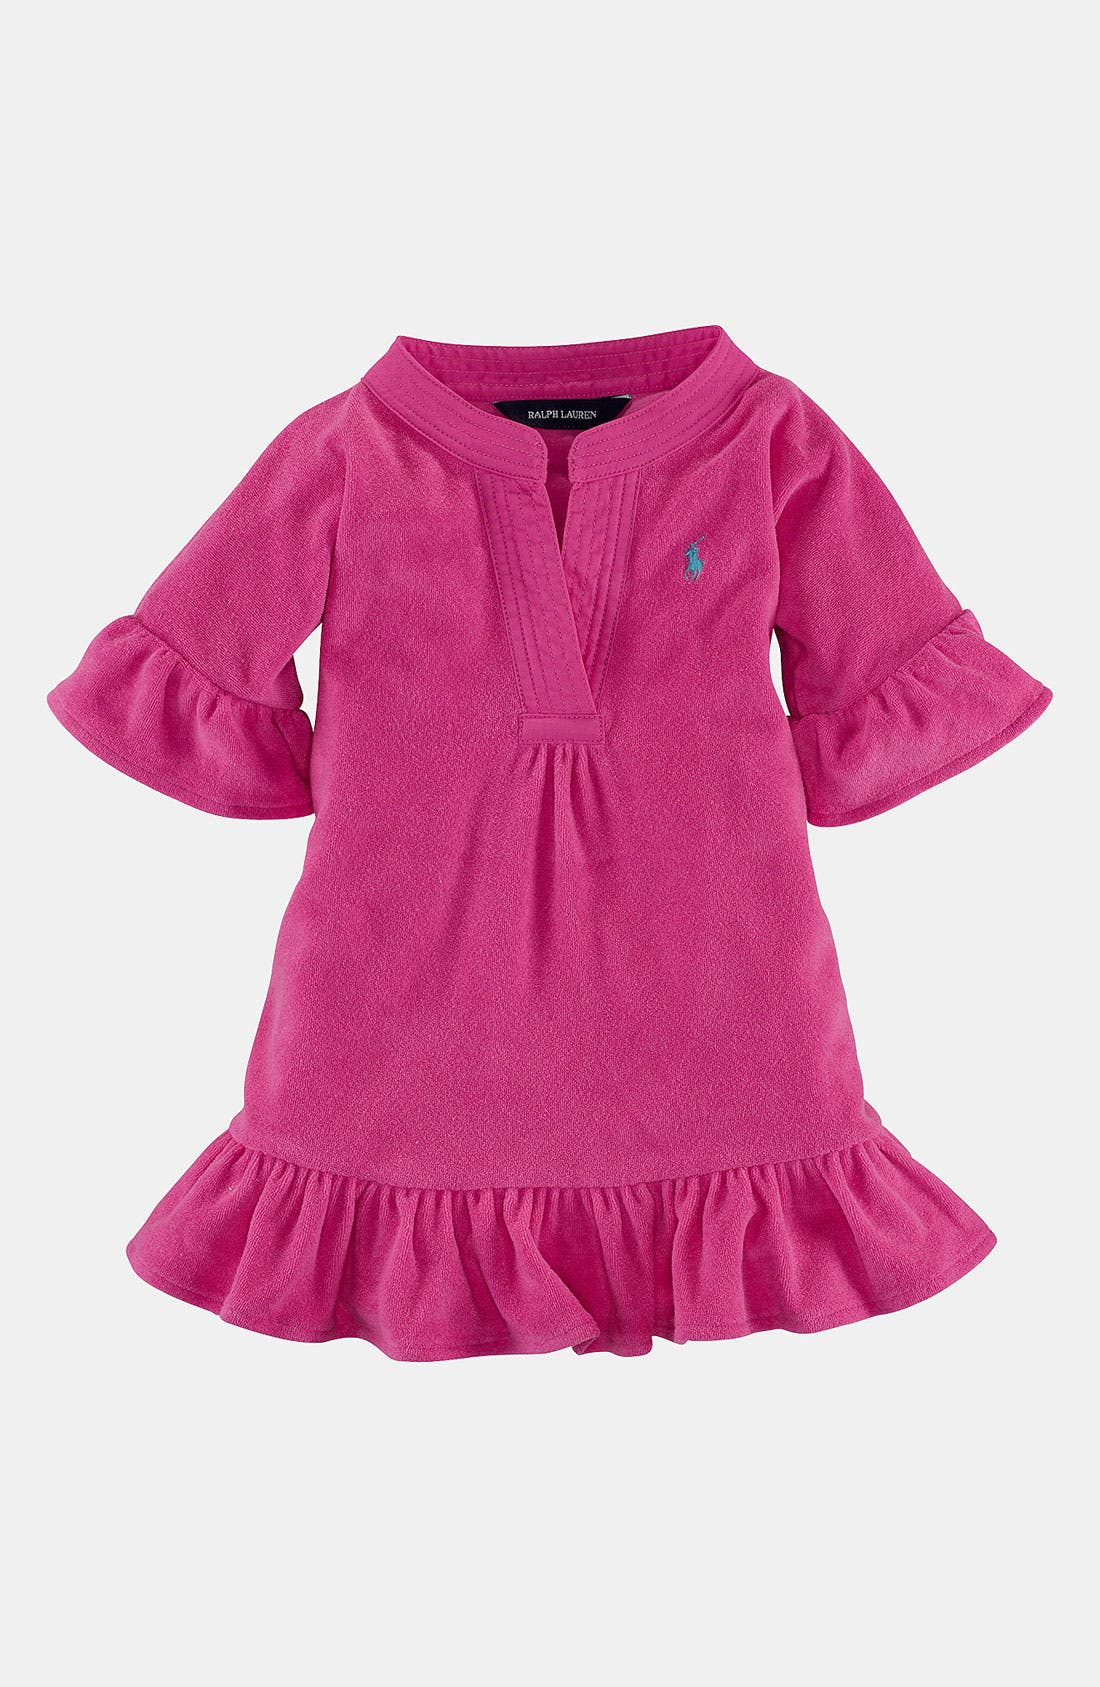 Alternate Image 1 Selected - Ralph Lauren Cover-Up (Baby)